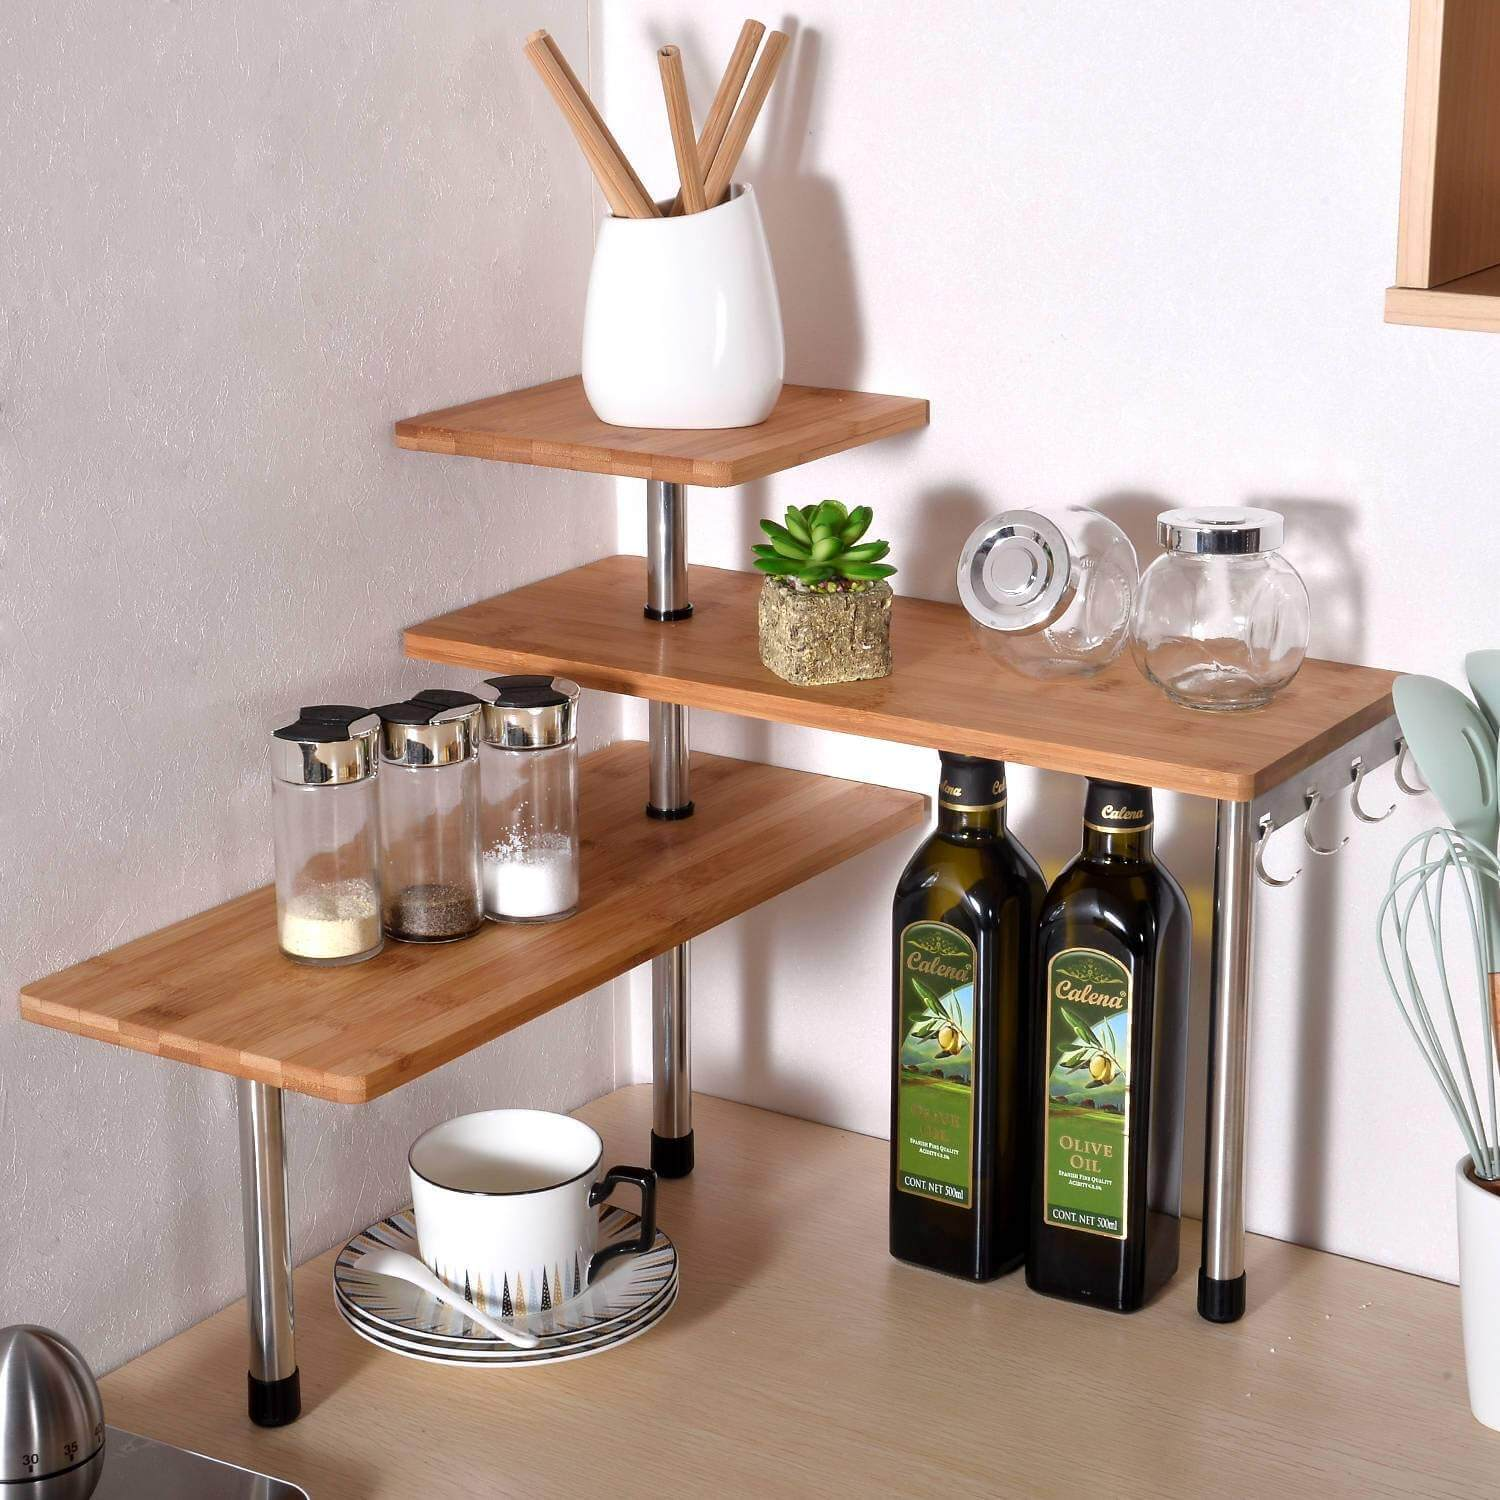 Three-tiered open shelves.